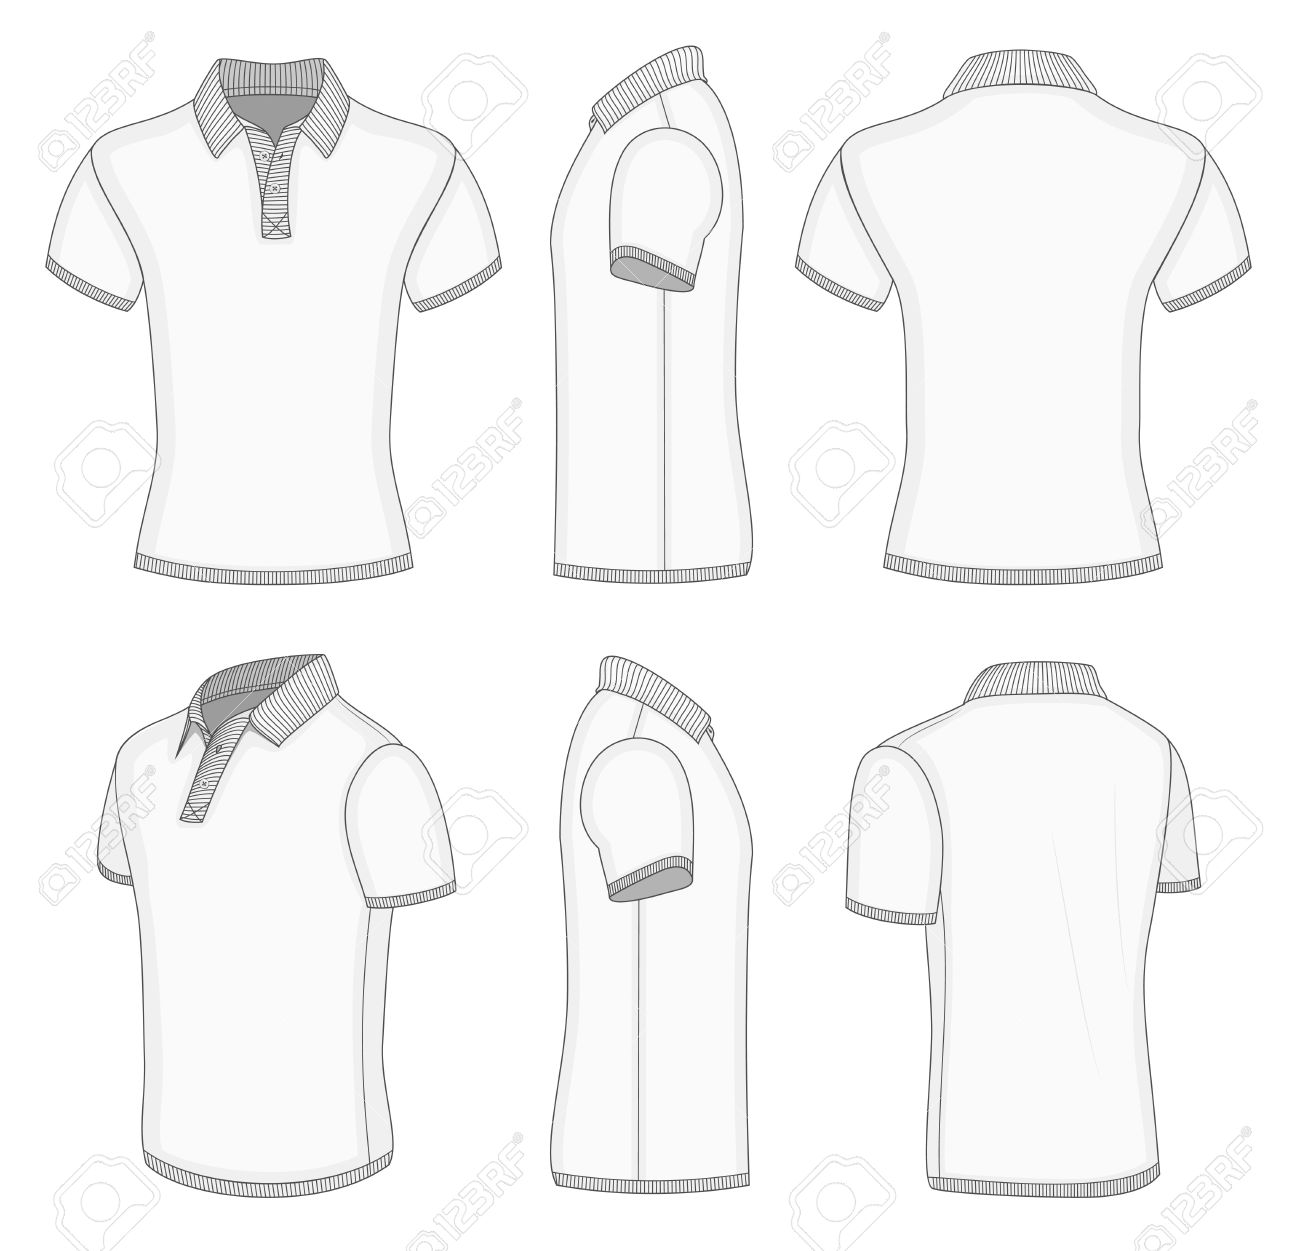 All Views Mens White Short Sleeve Polo Shirt Design Templates Front Back Half